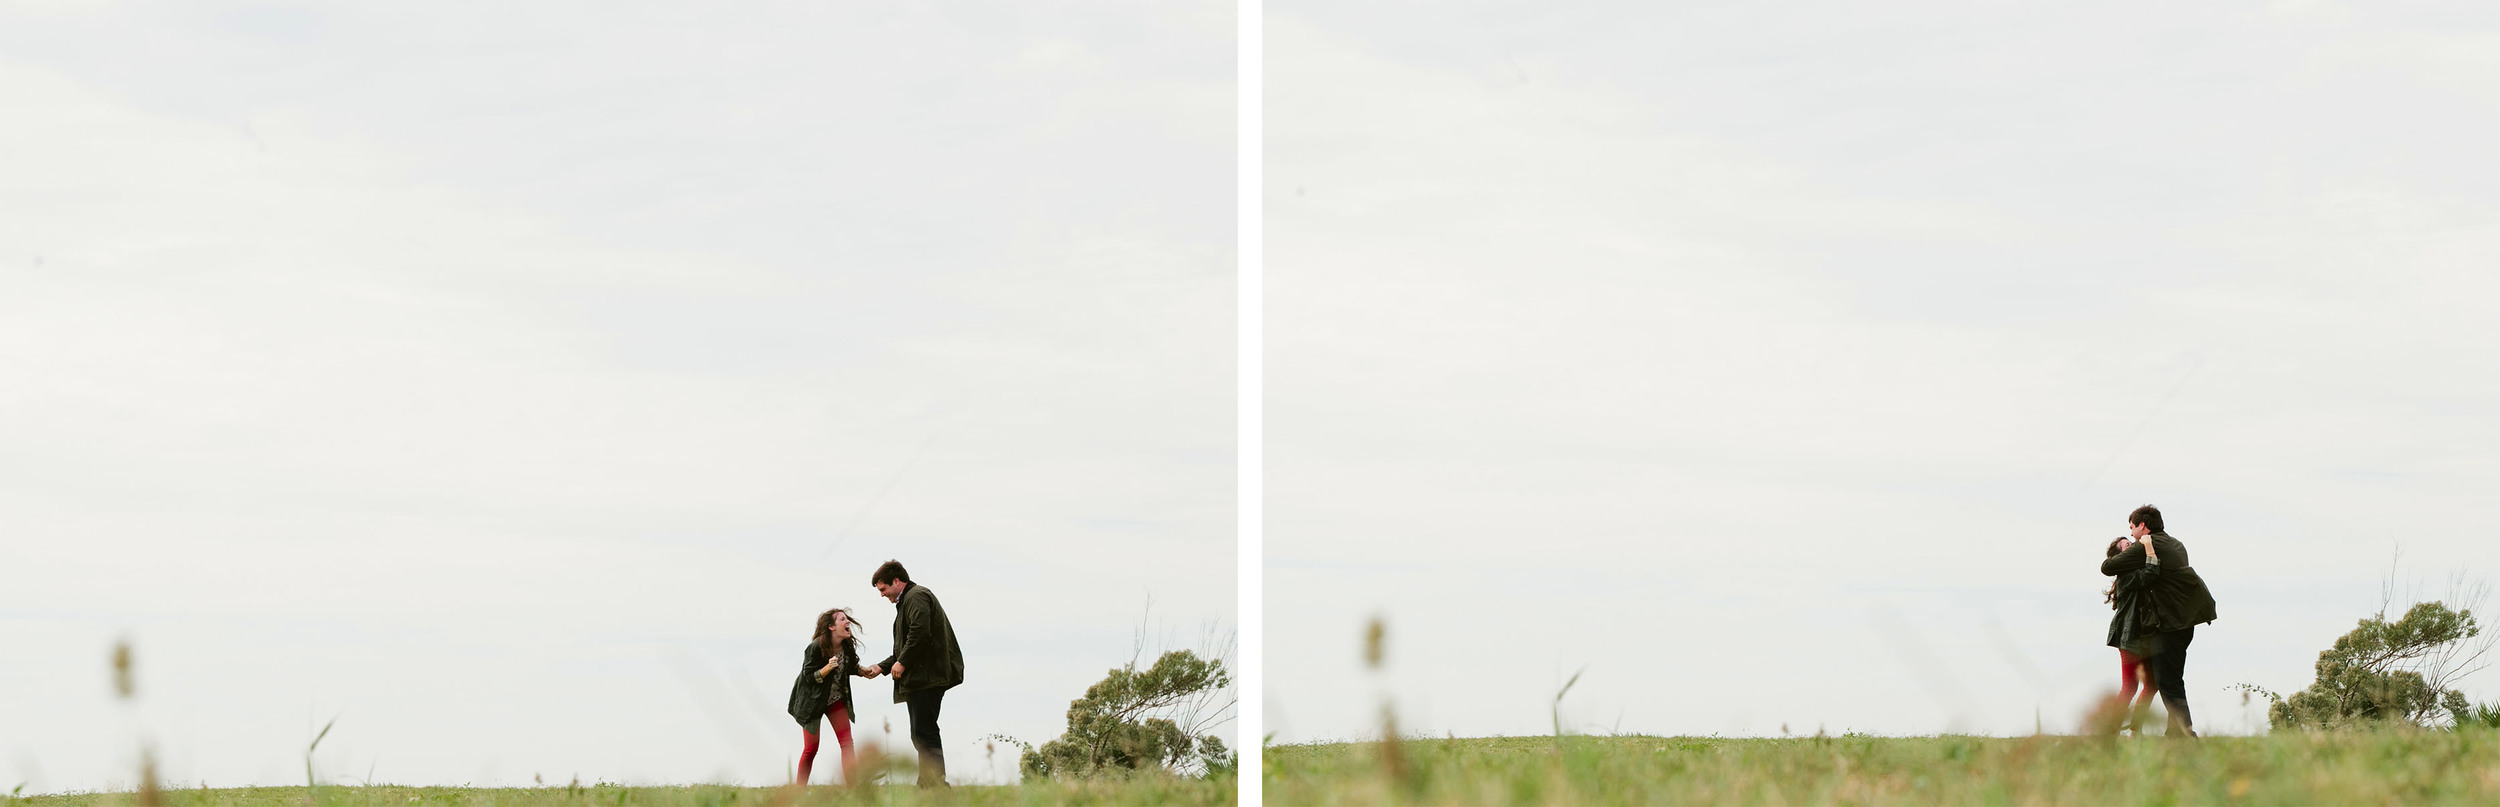 Tampa-Engagement-Photographer-Kathryn-McCrary-Photography-Proposal10.jpg